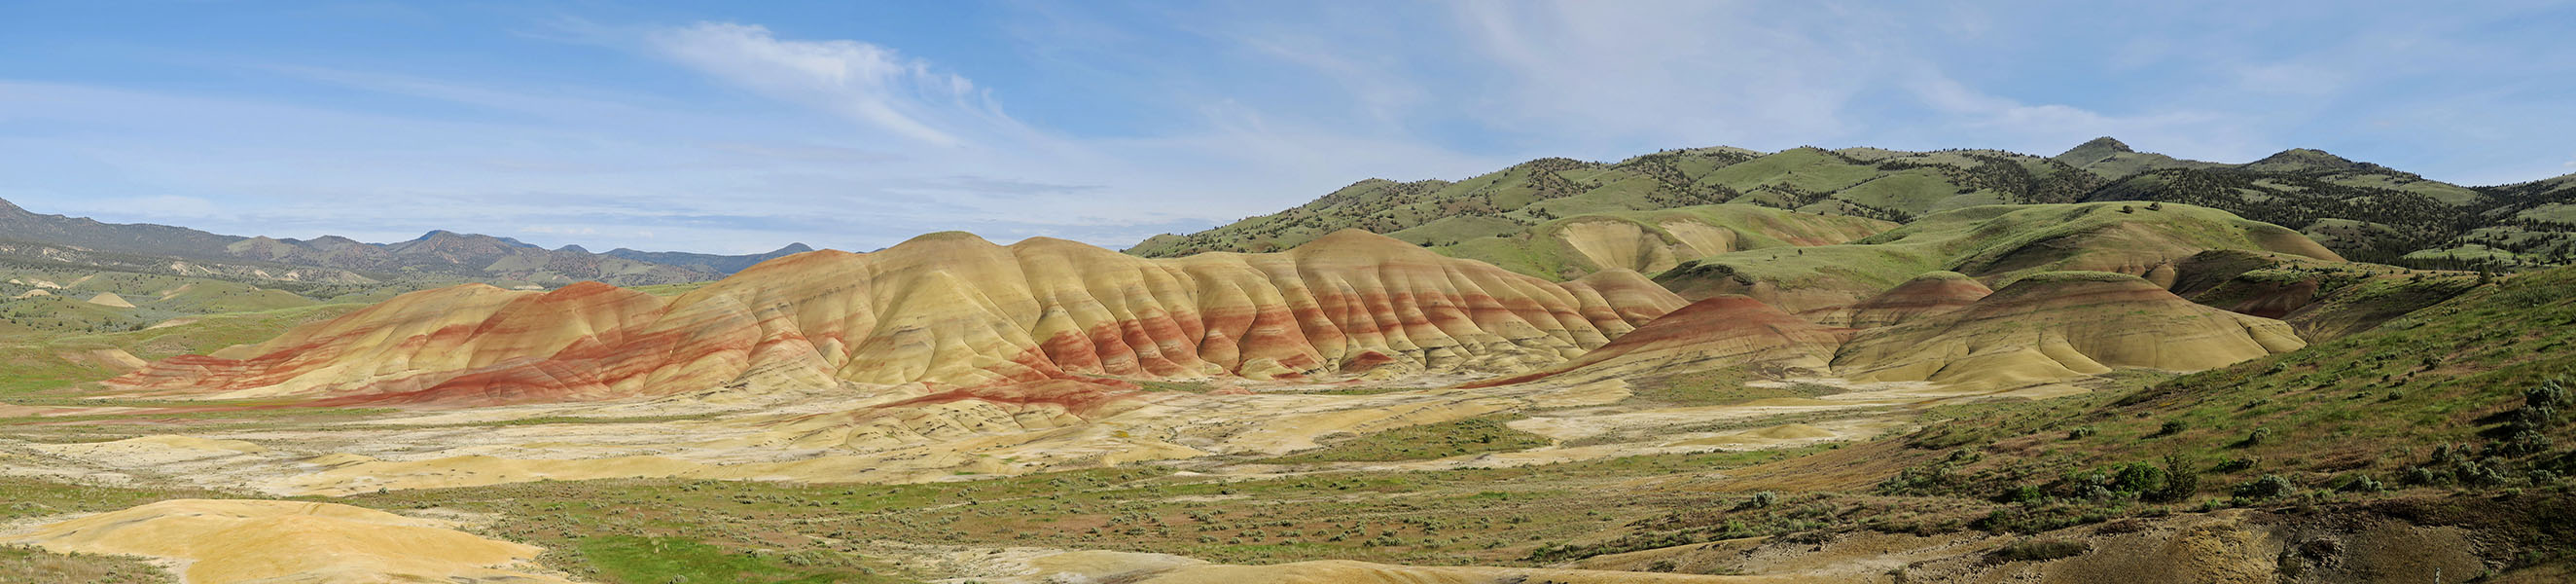 Painted Hills panorama [Painted Hills Unit, John Day Fossil Beds National Monument, Oregon]